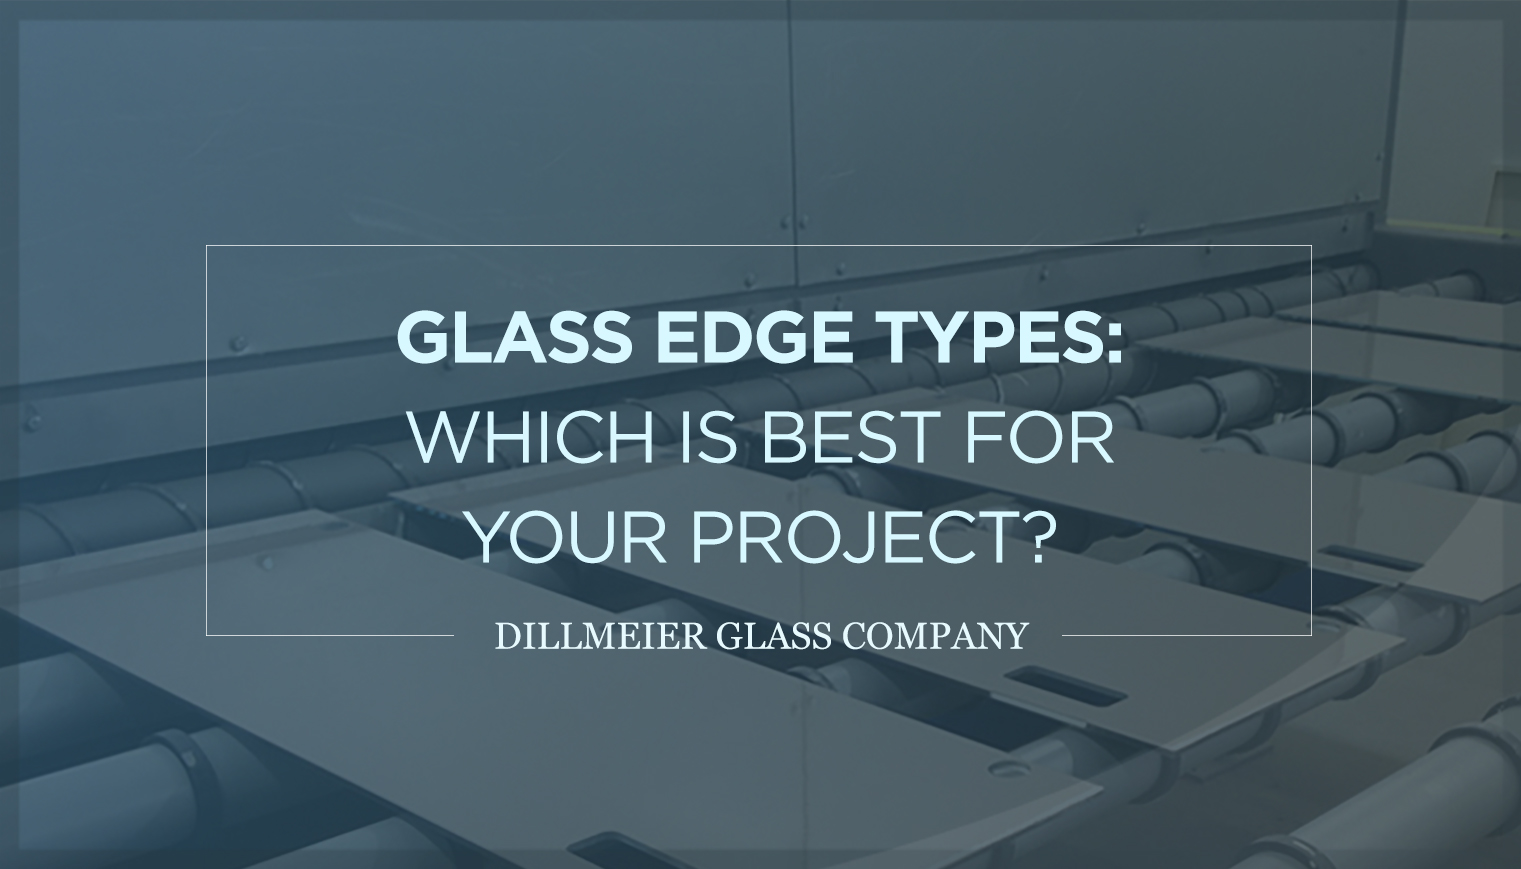 Glass Edge Types: Which Is Best for Your Project?